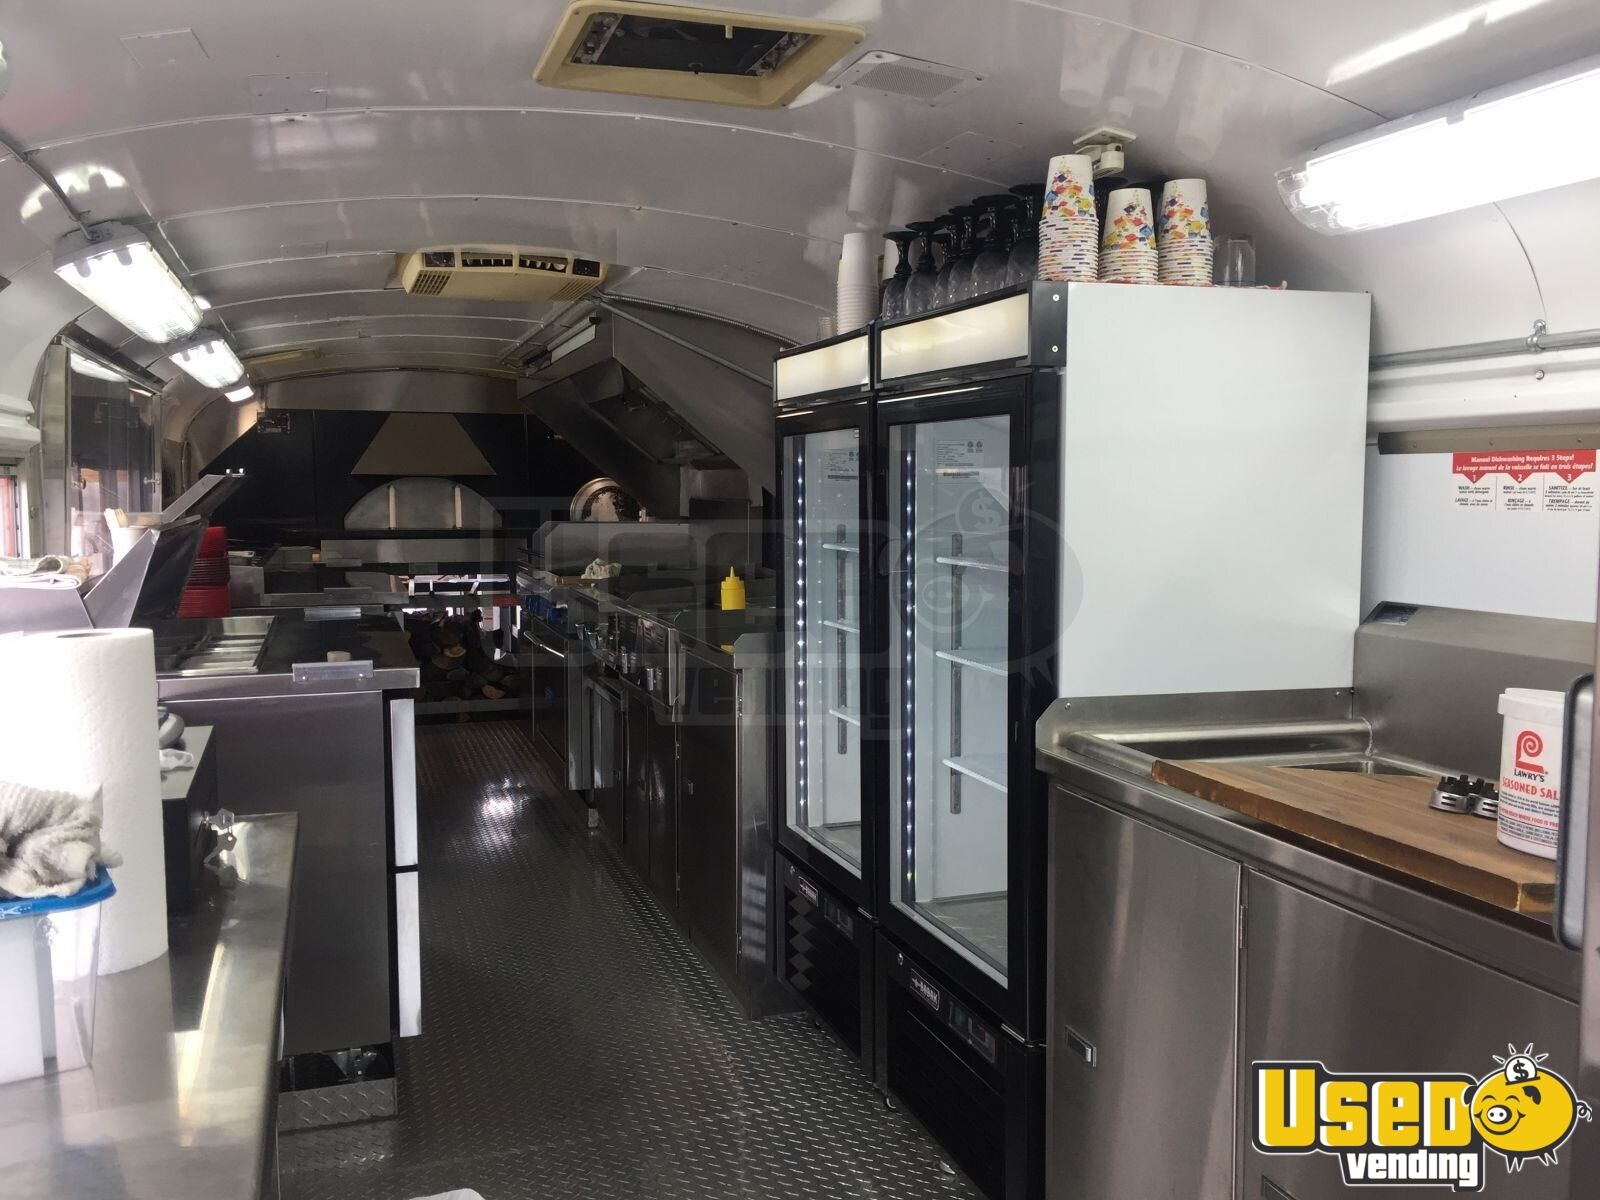 1976 Bluebird All-purpose Food Truck Fryer Yukon Territory Gas Engine for Sale - 17